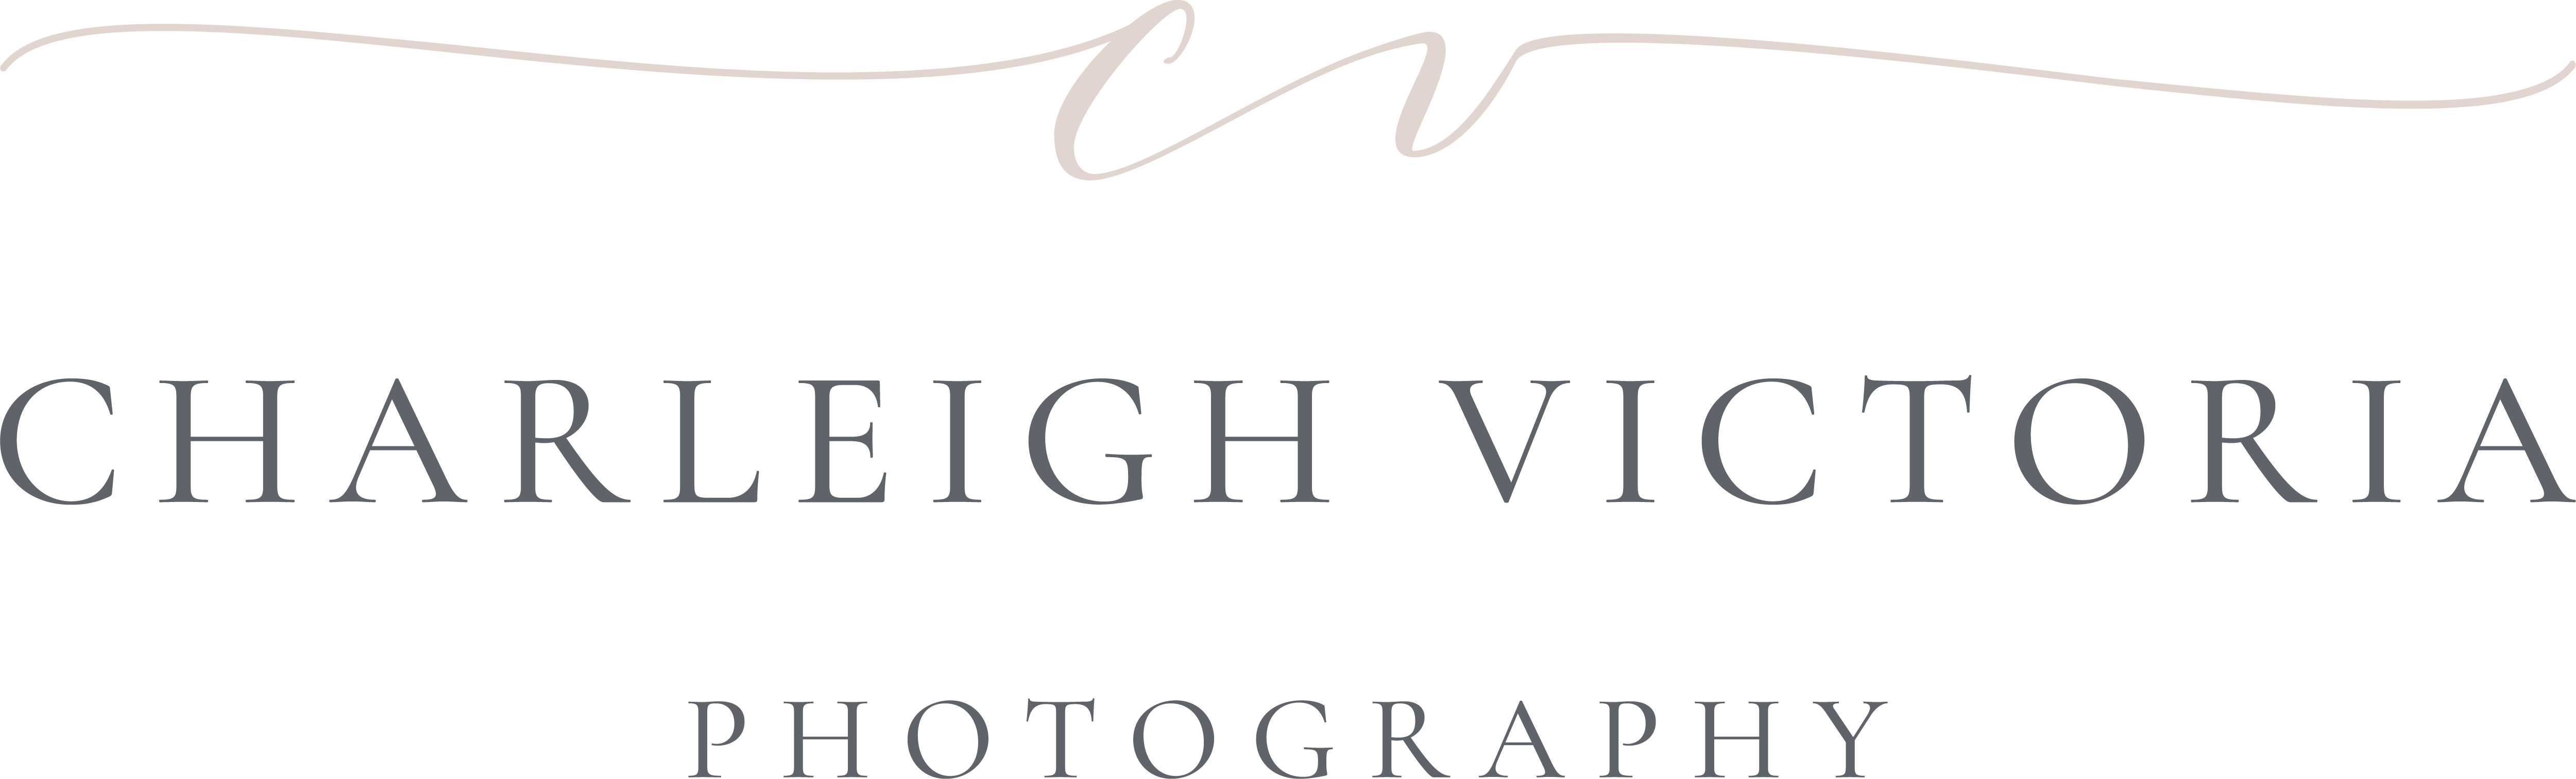 Charleigh Victoria Photography logo